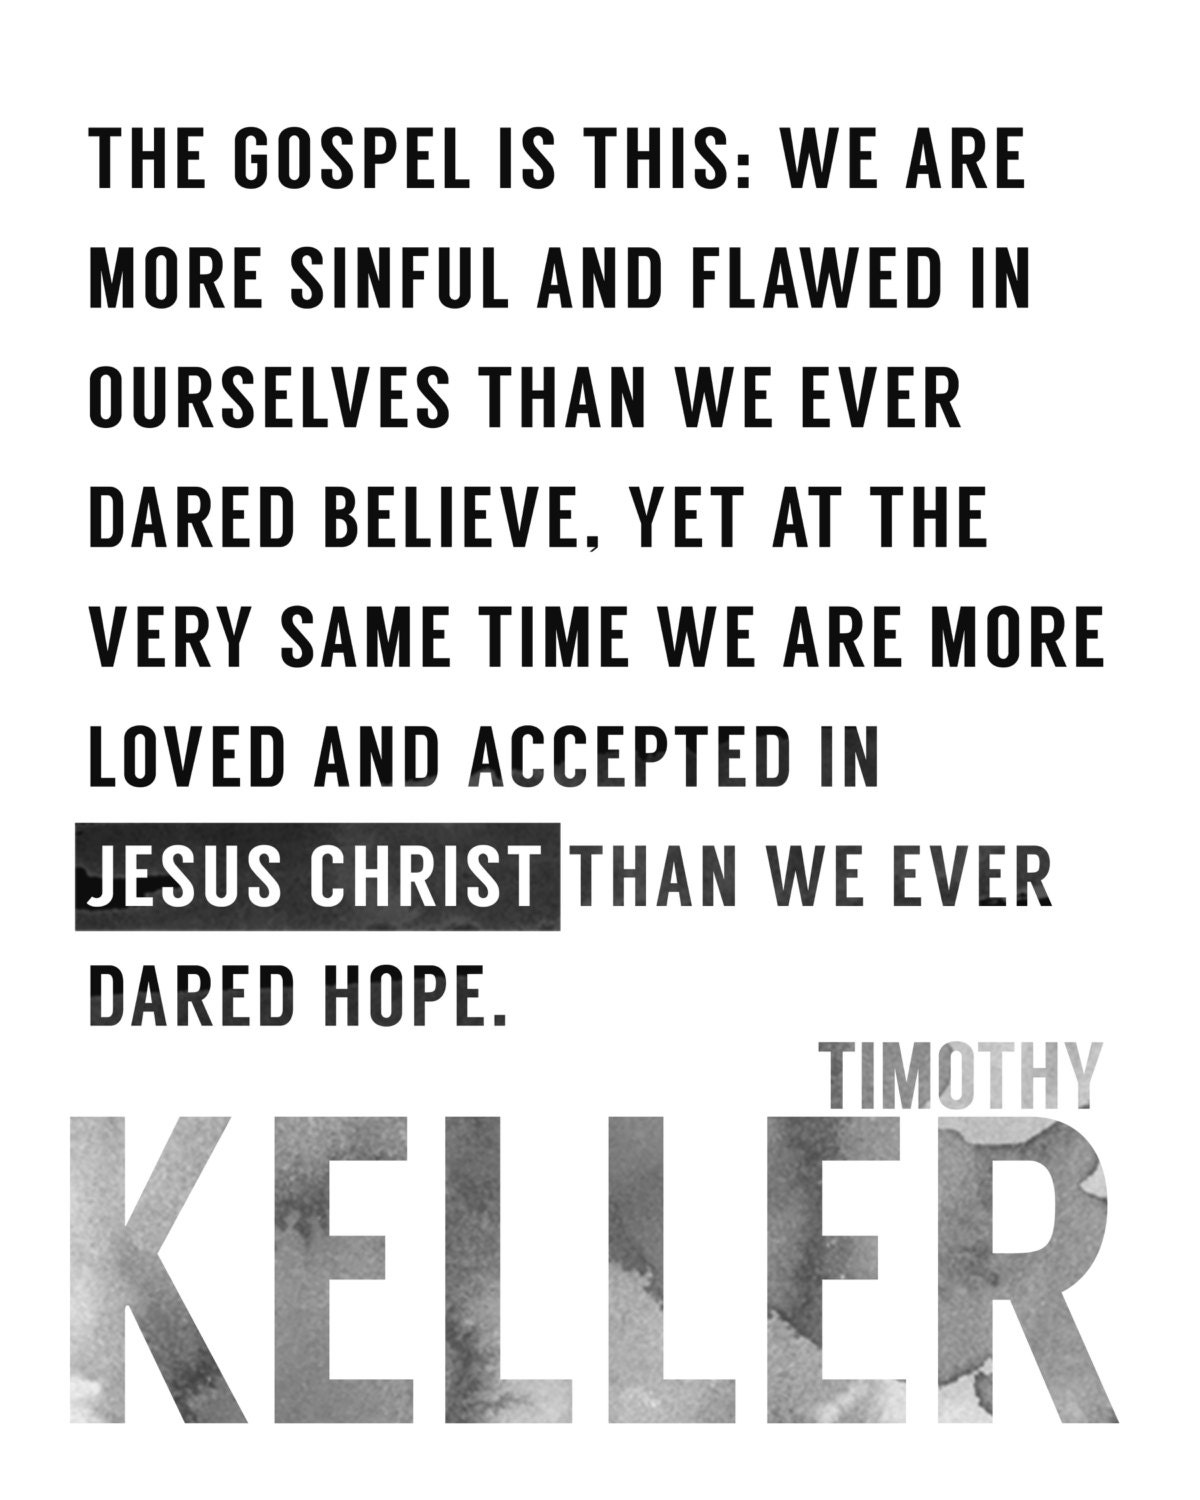 Timothy Keller Quotes The Gospel Is Thiskeller Quote Typography Quotes Wall Art